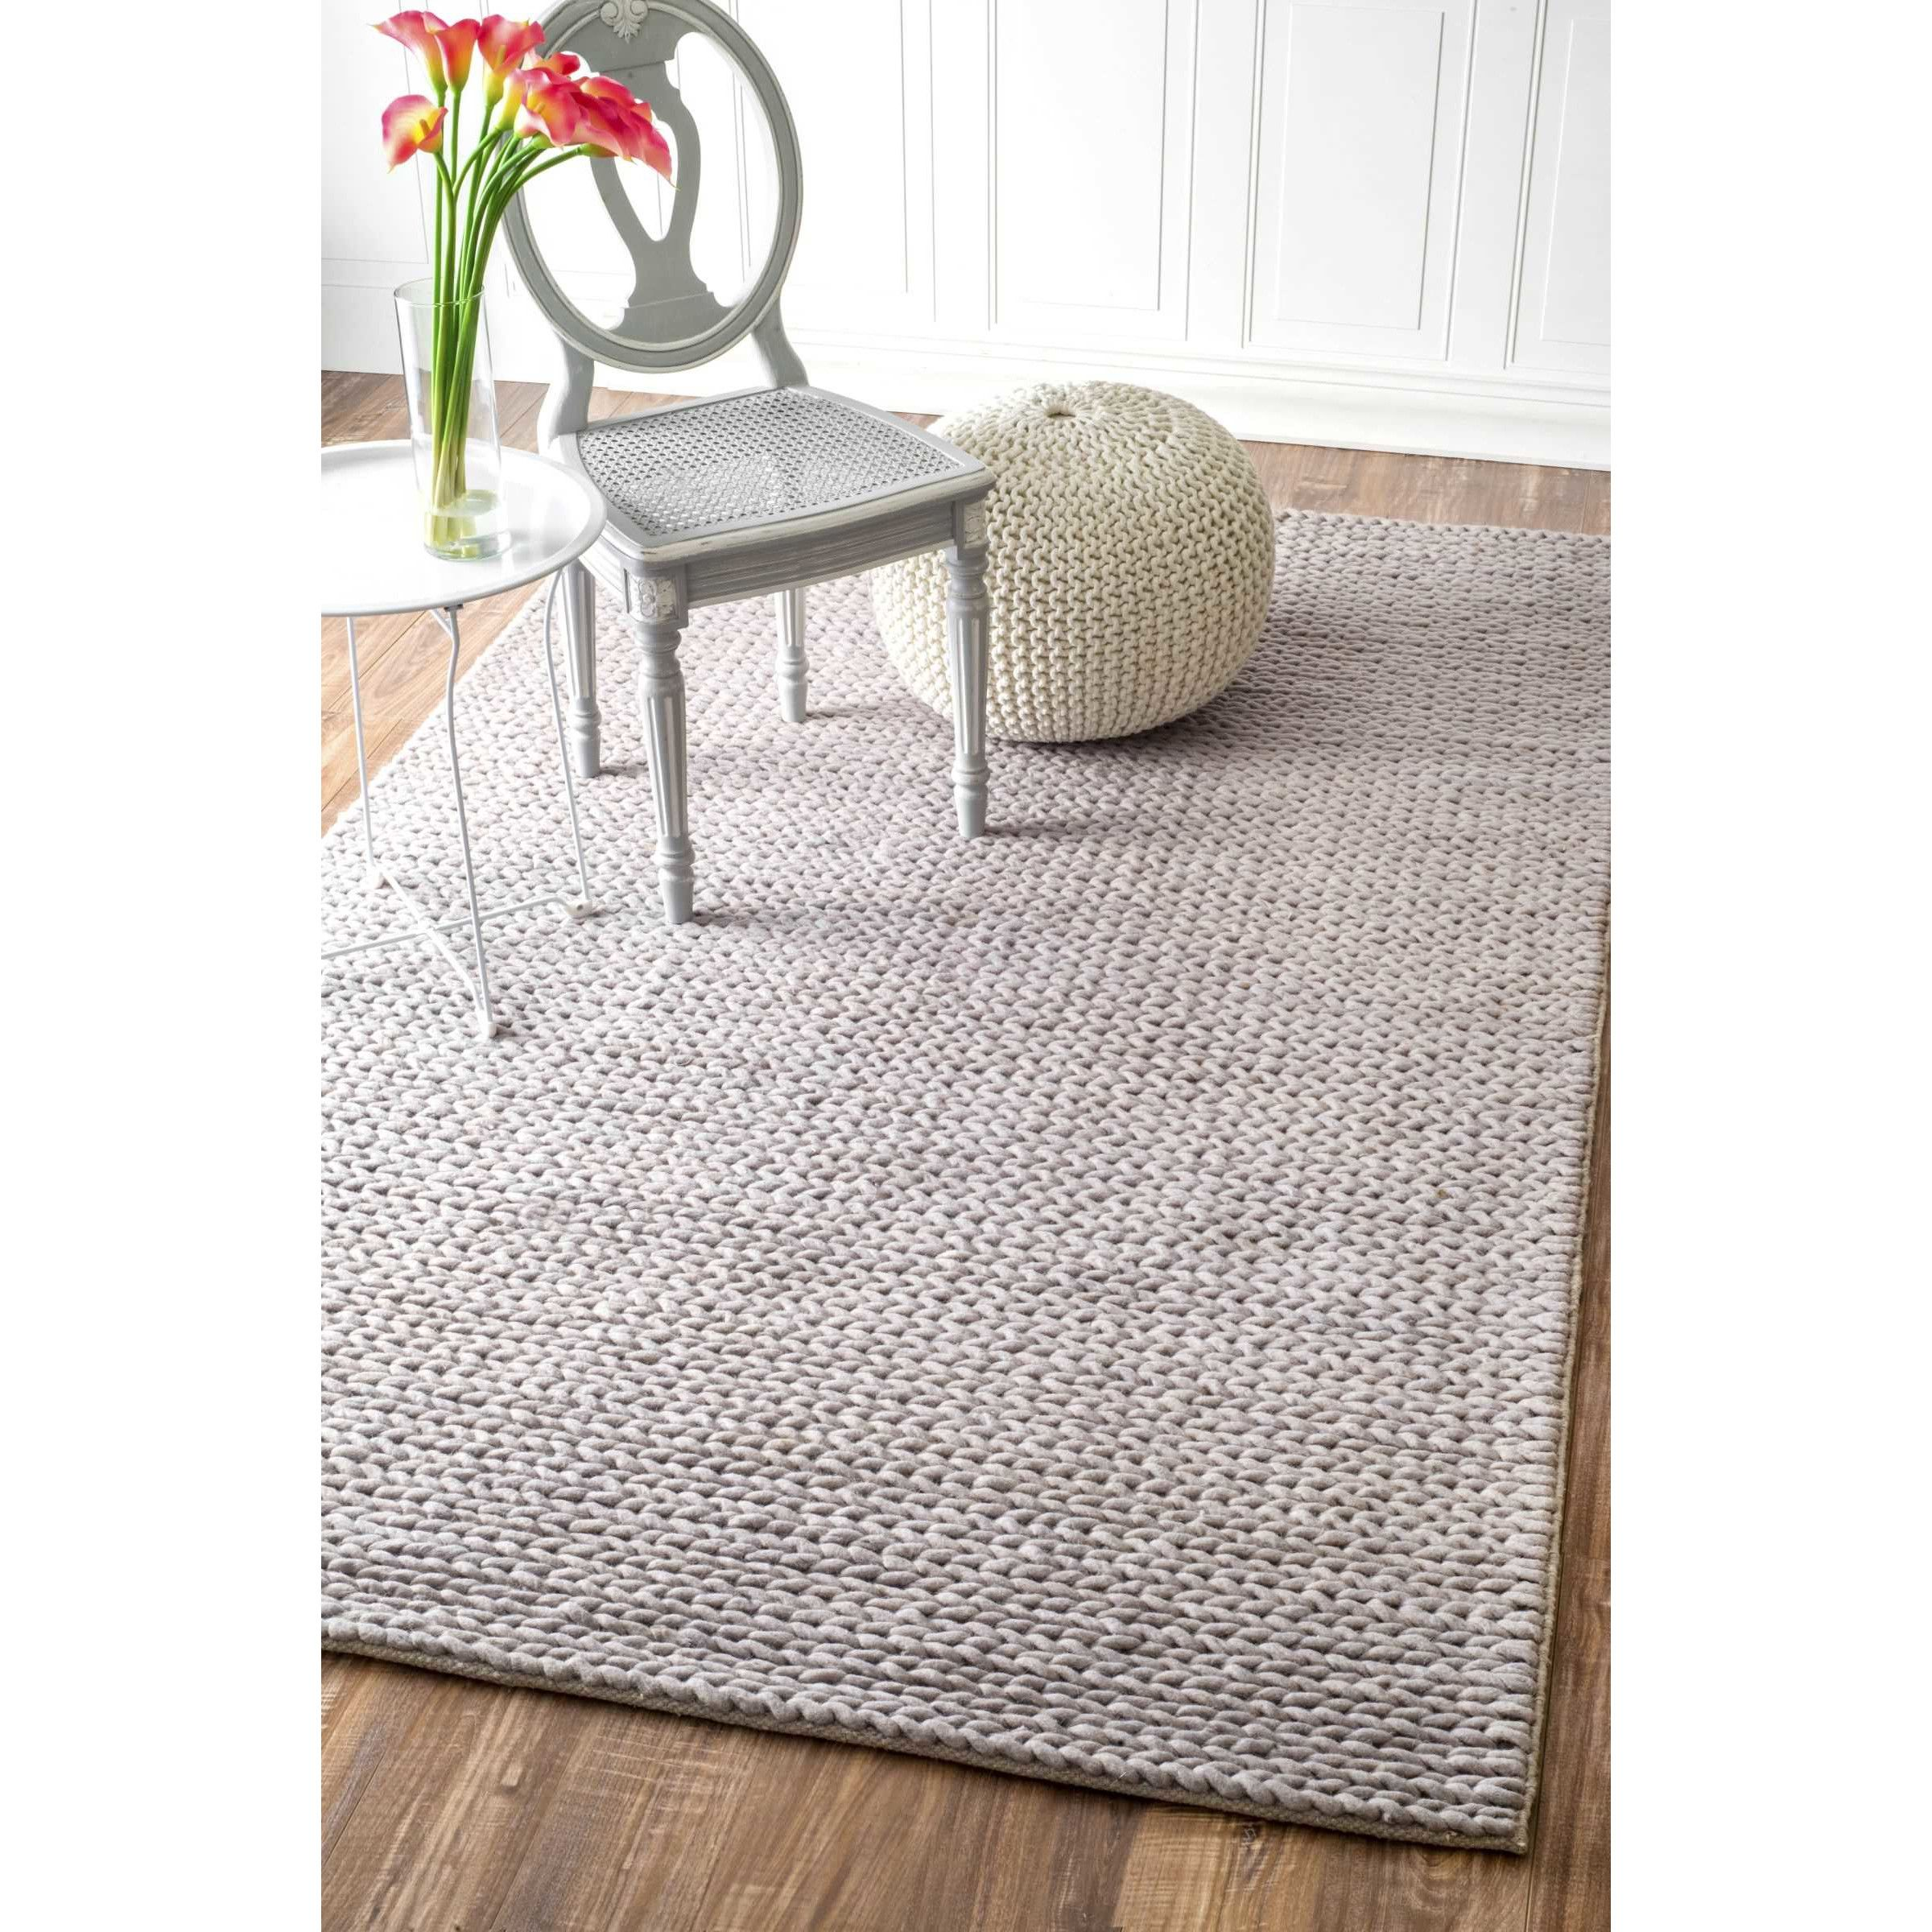 Youu0027ll Love The Touchstone Woolen Cable Light Gray Area Rug At Wayfair    Great